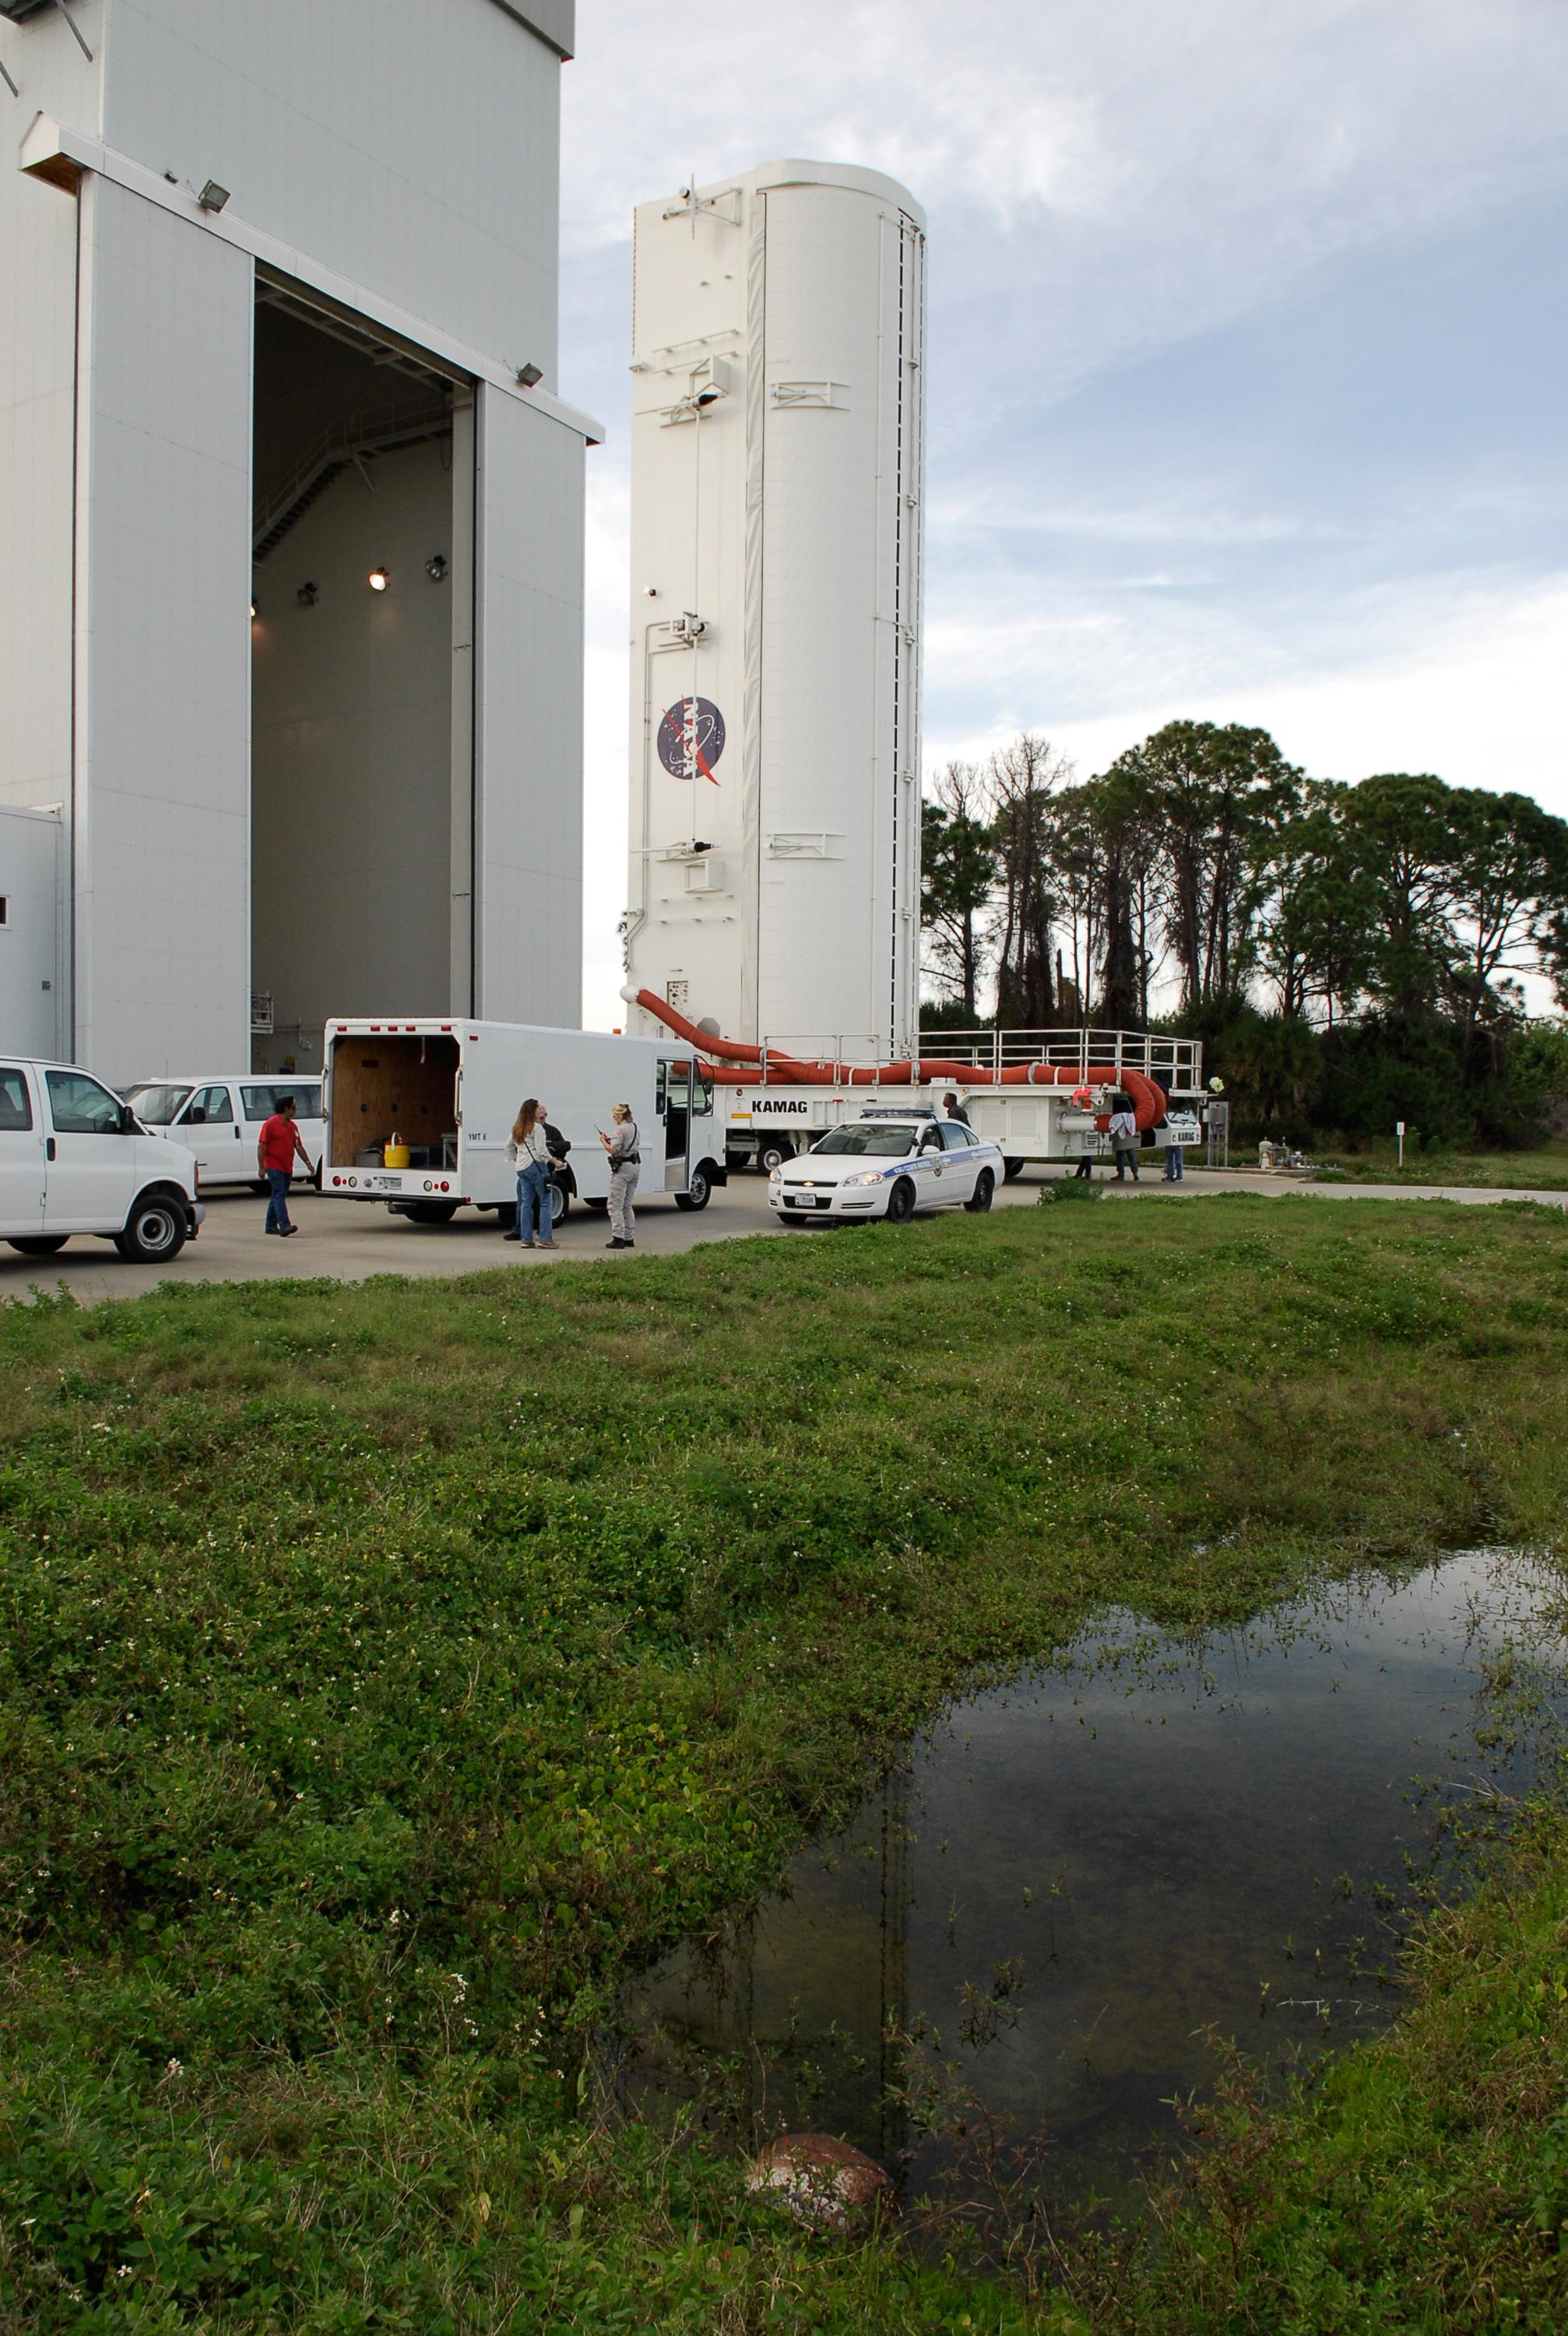 Mothballed Ship Rocket From NASA - Pics about space